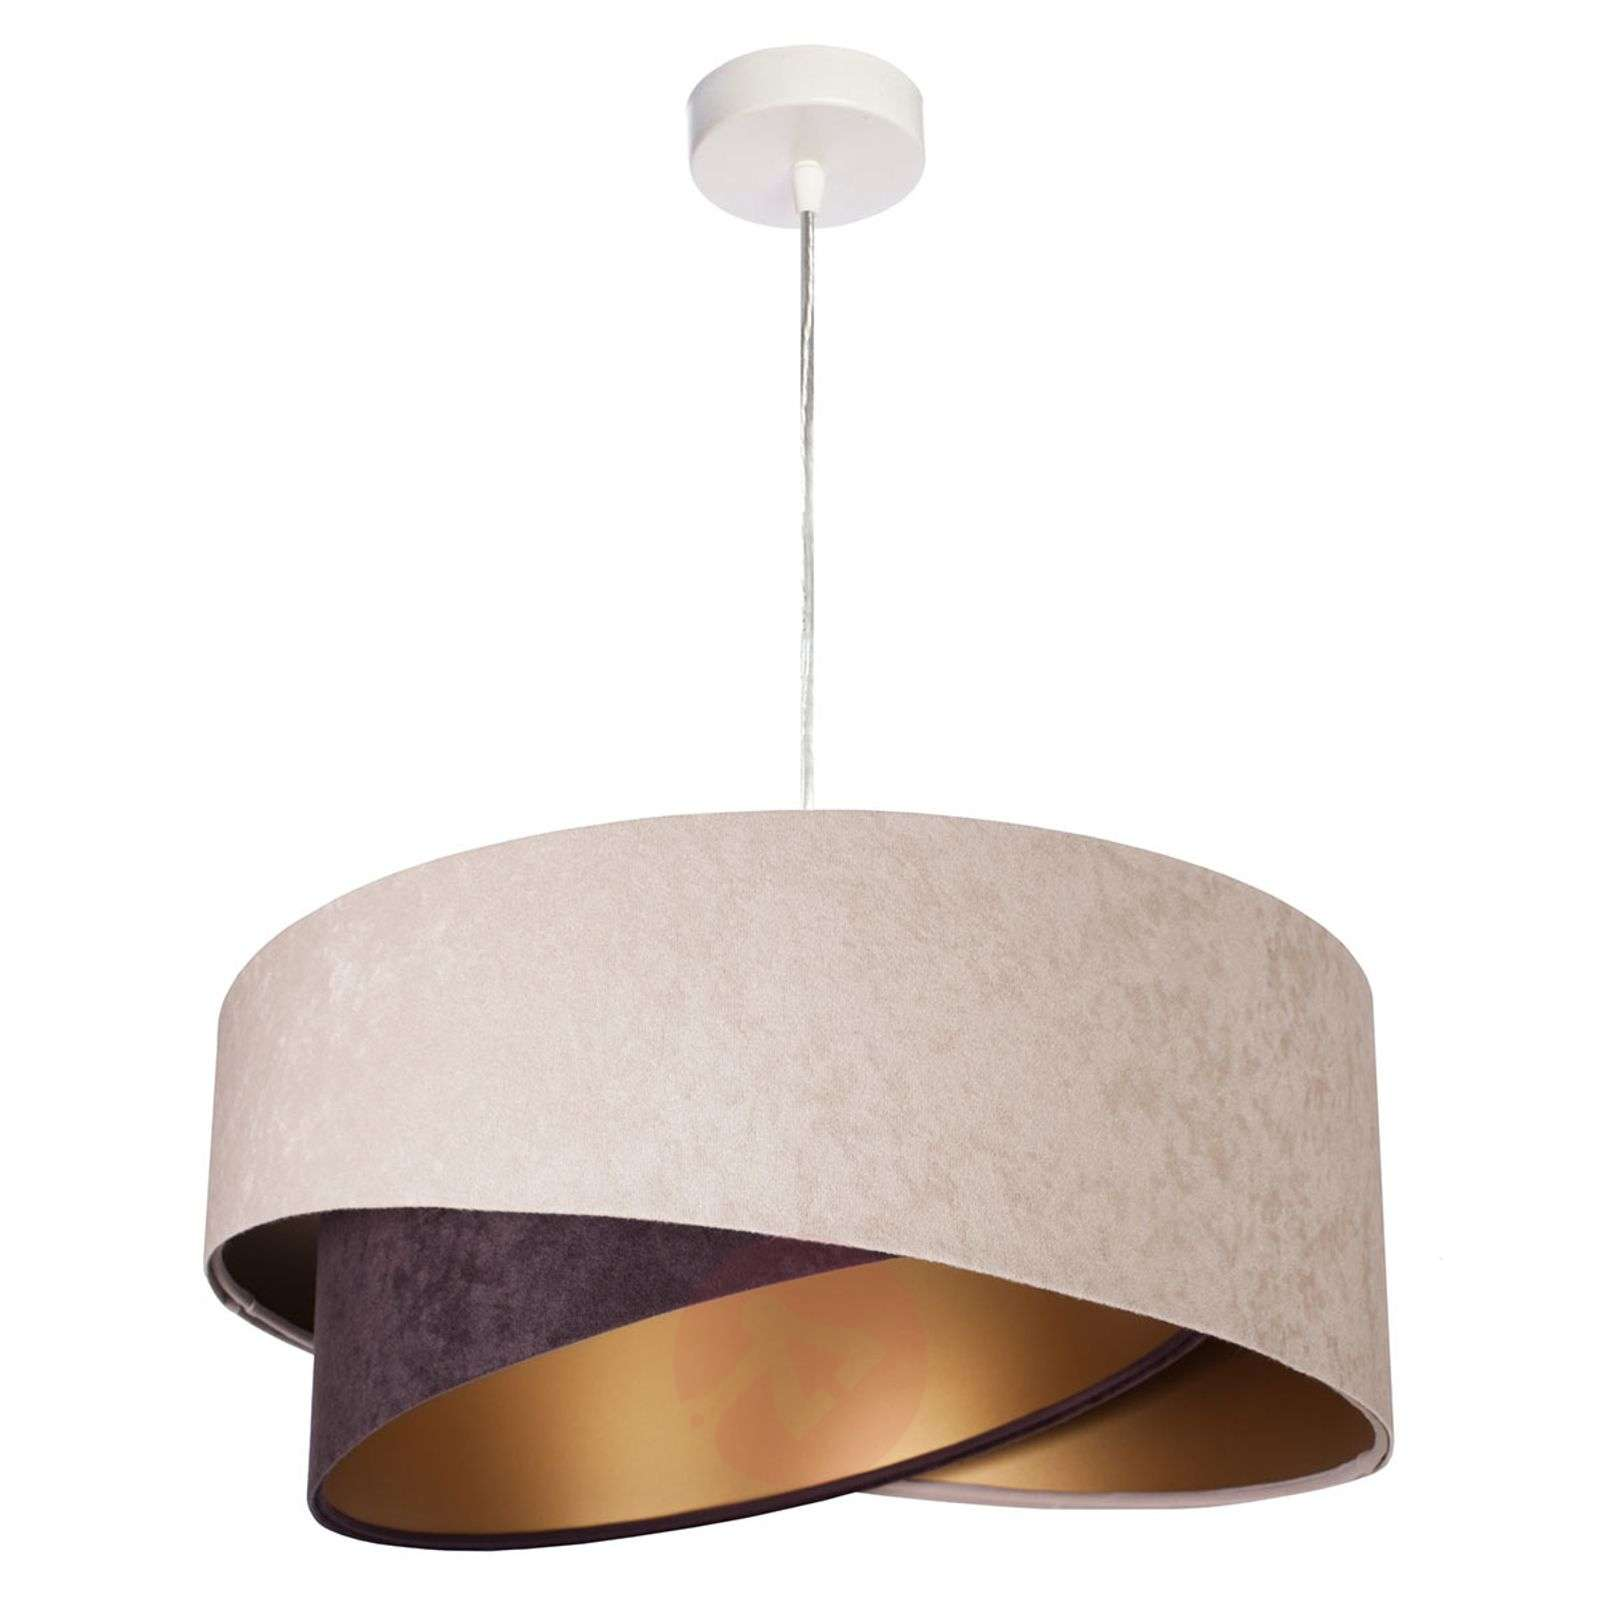 Arianna hanging light, layered look, two-tone-6728025-01